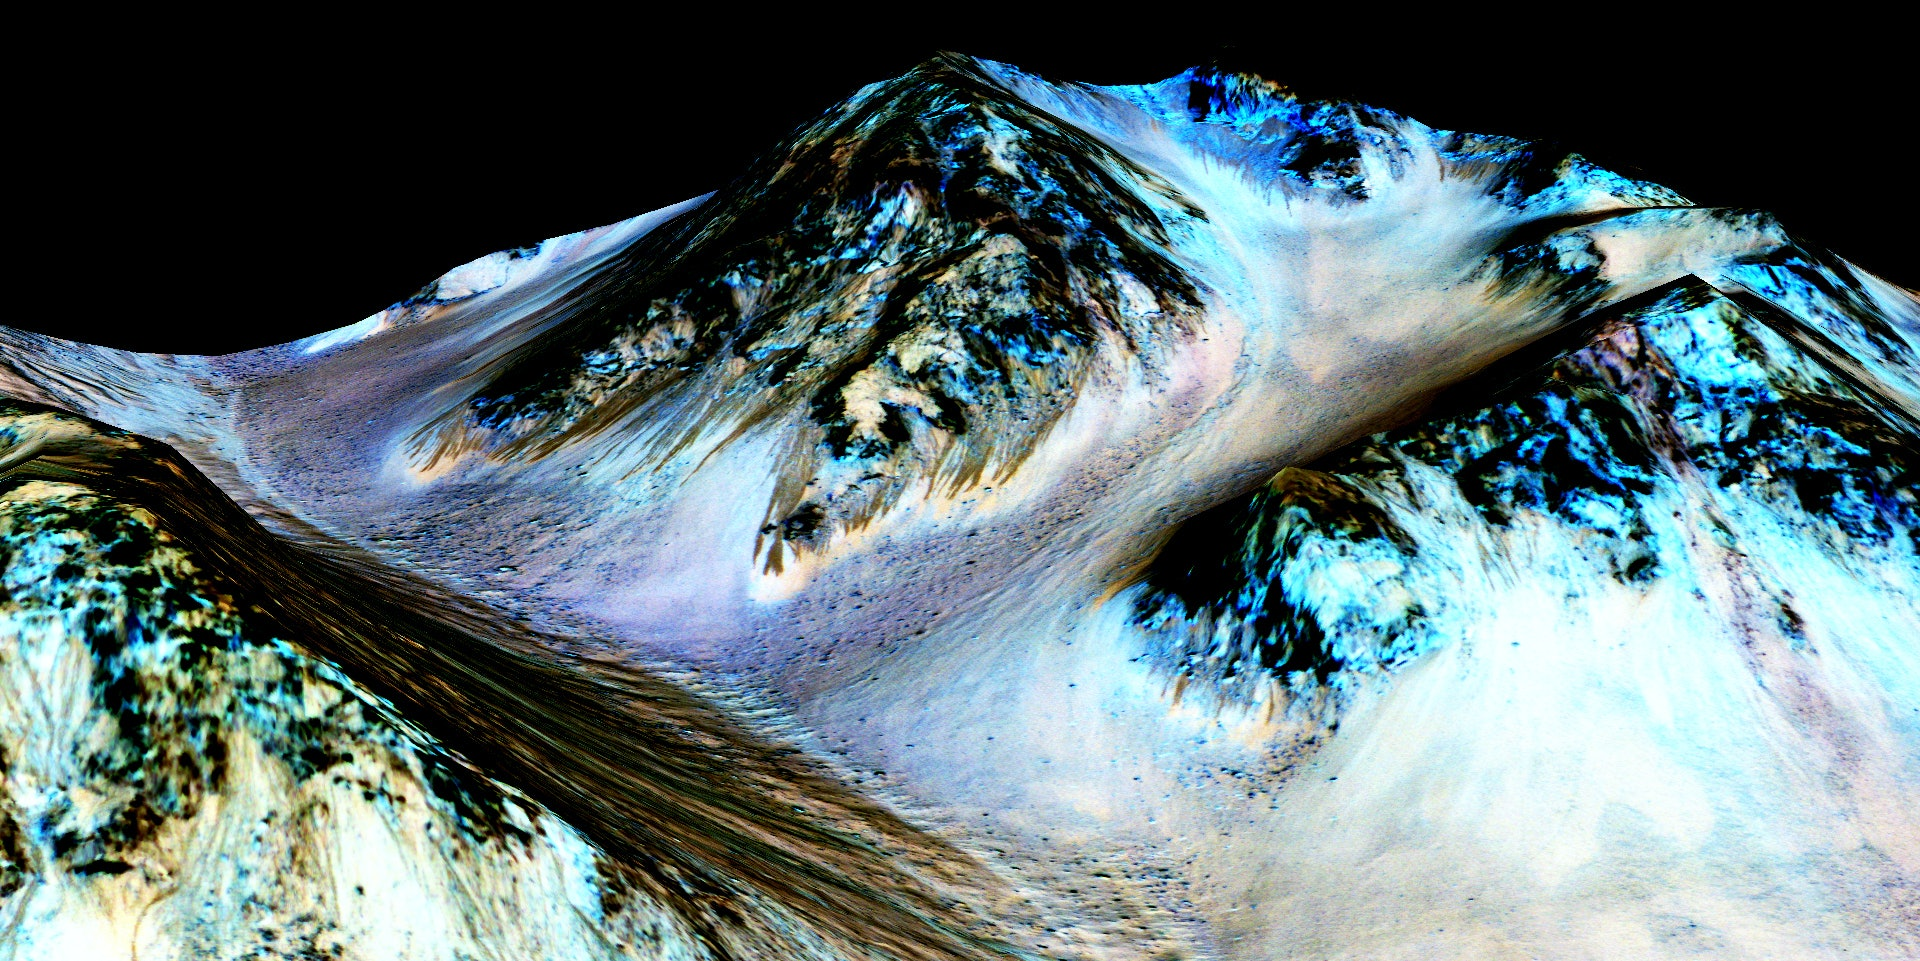 NASA Finds Volcanic Evidence for More Water on Mars